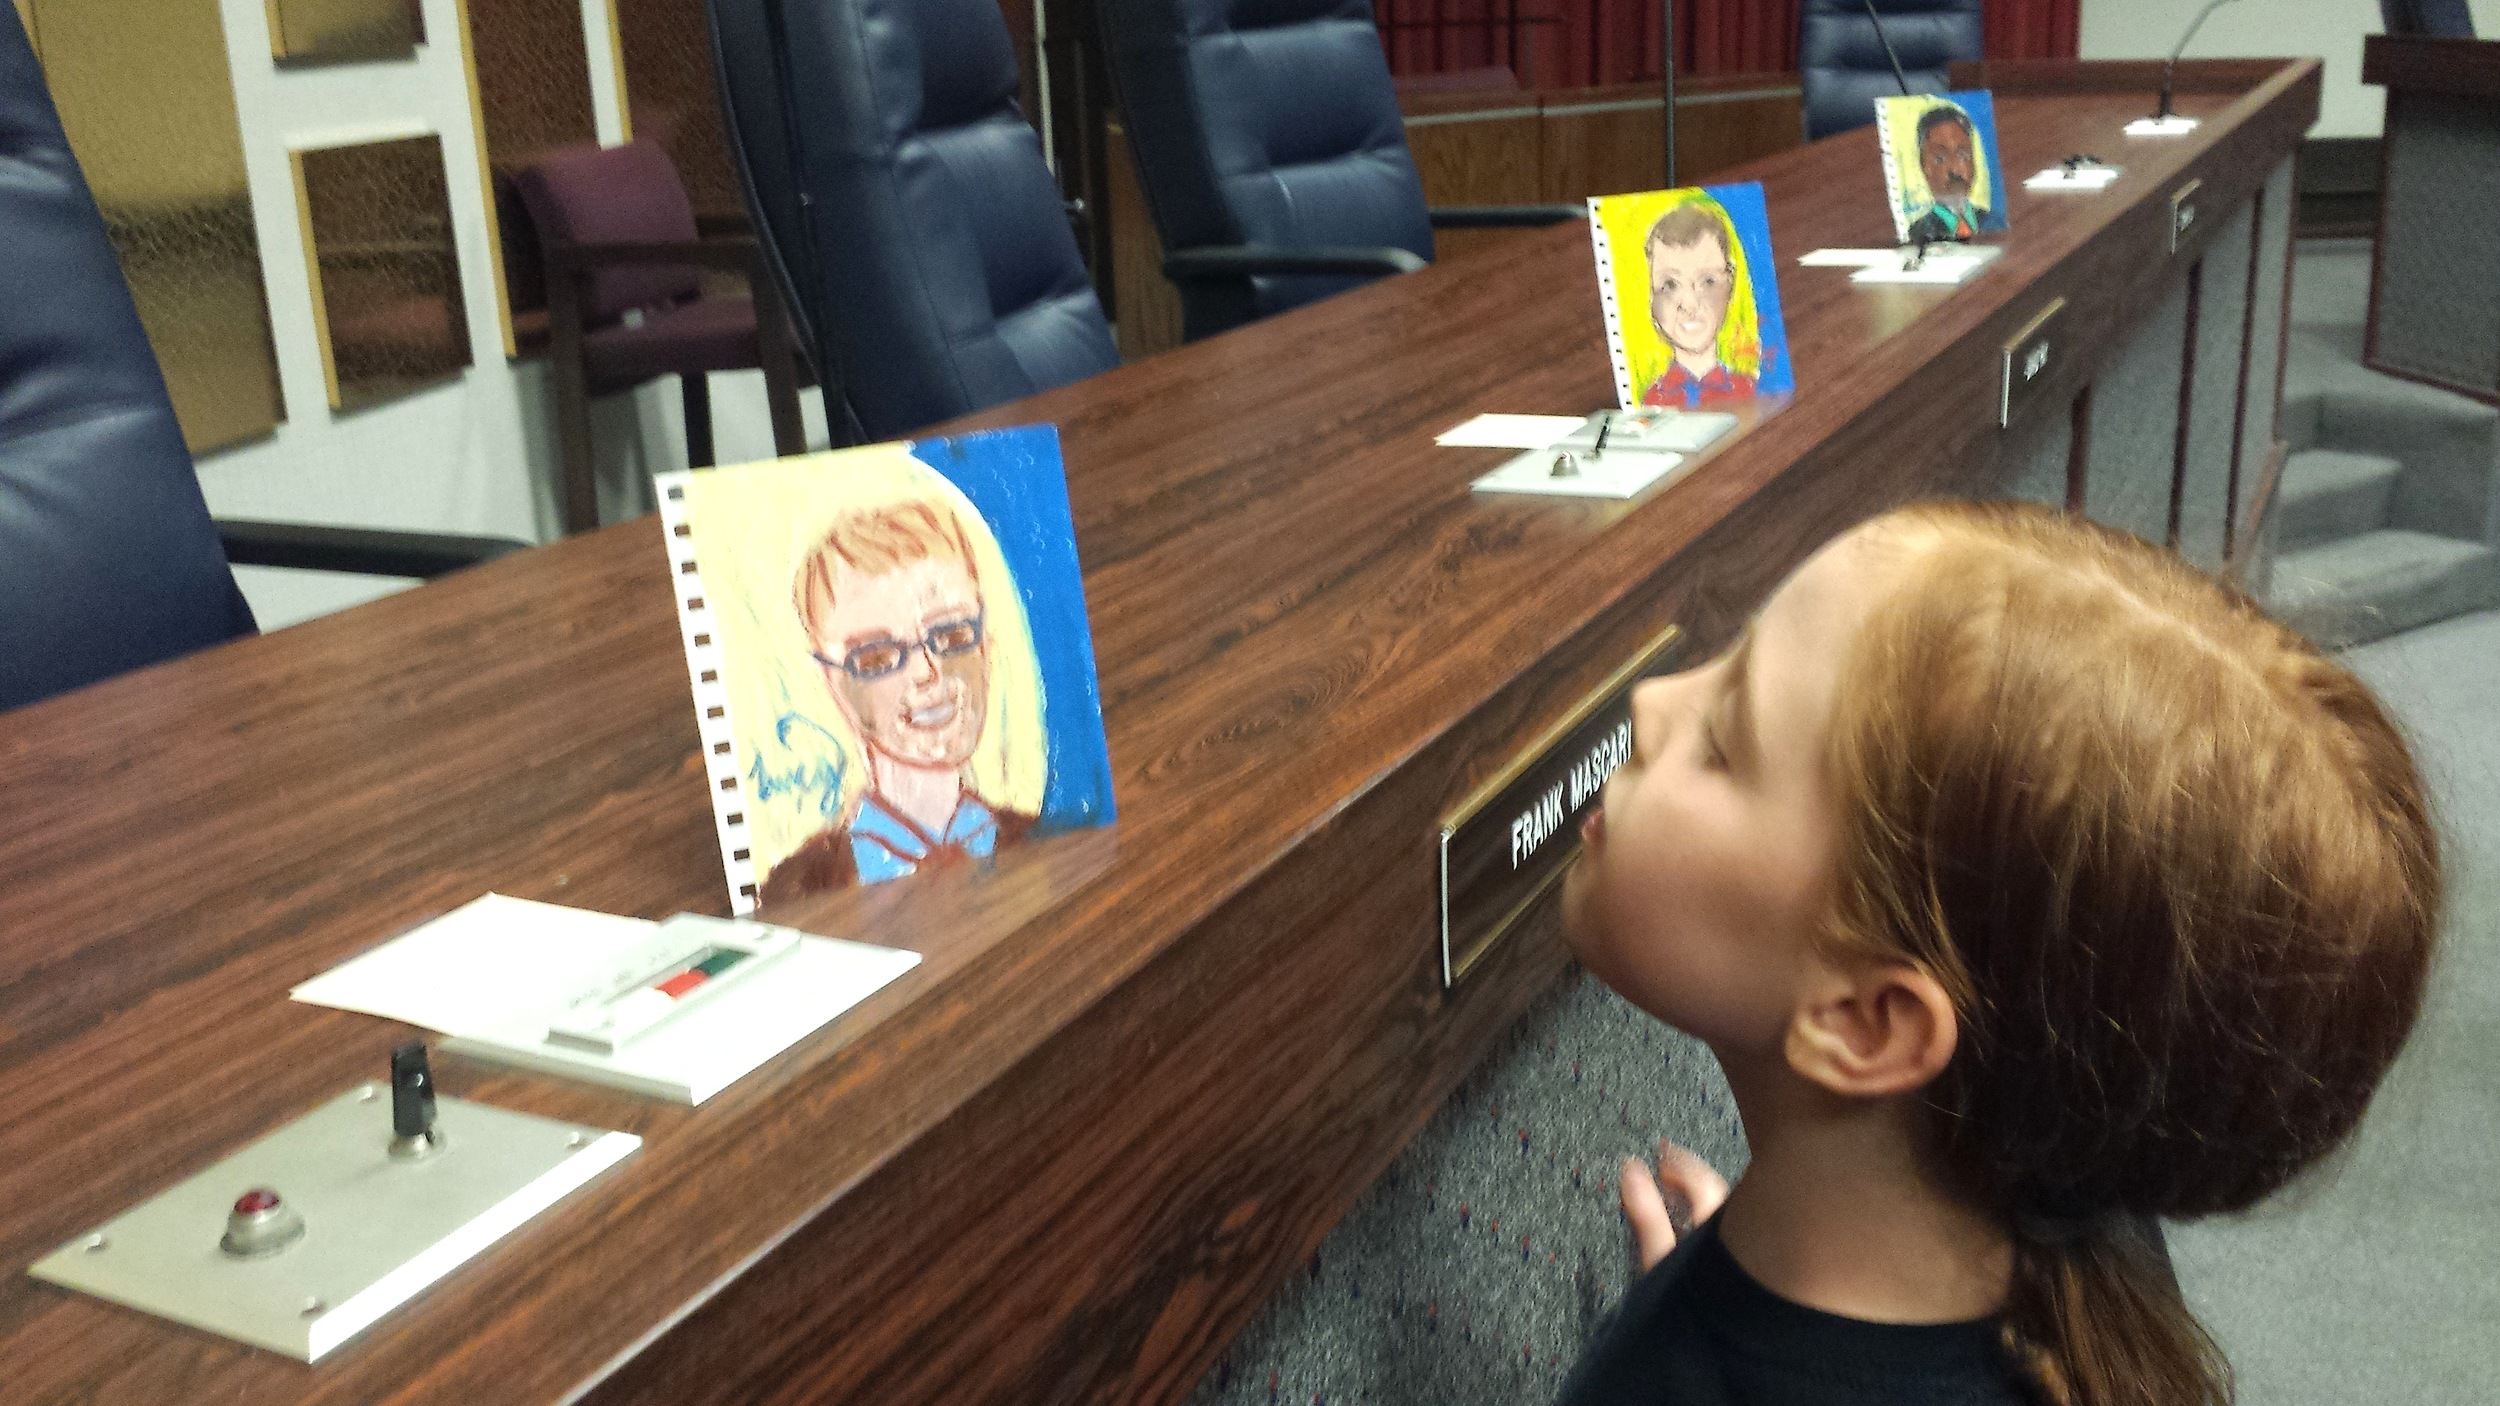 Ella, a student at School 91, inspects Lucy's portrait work.